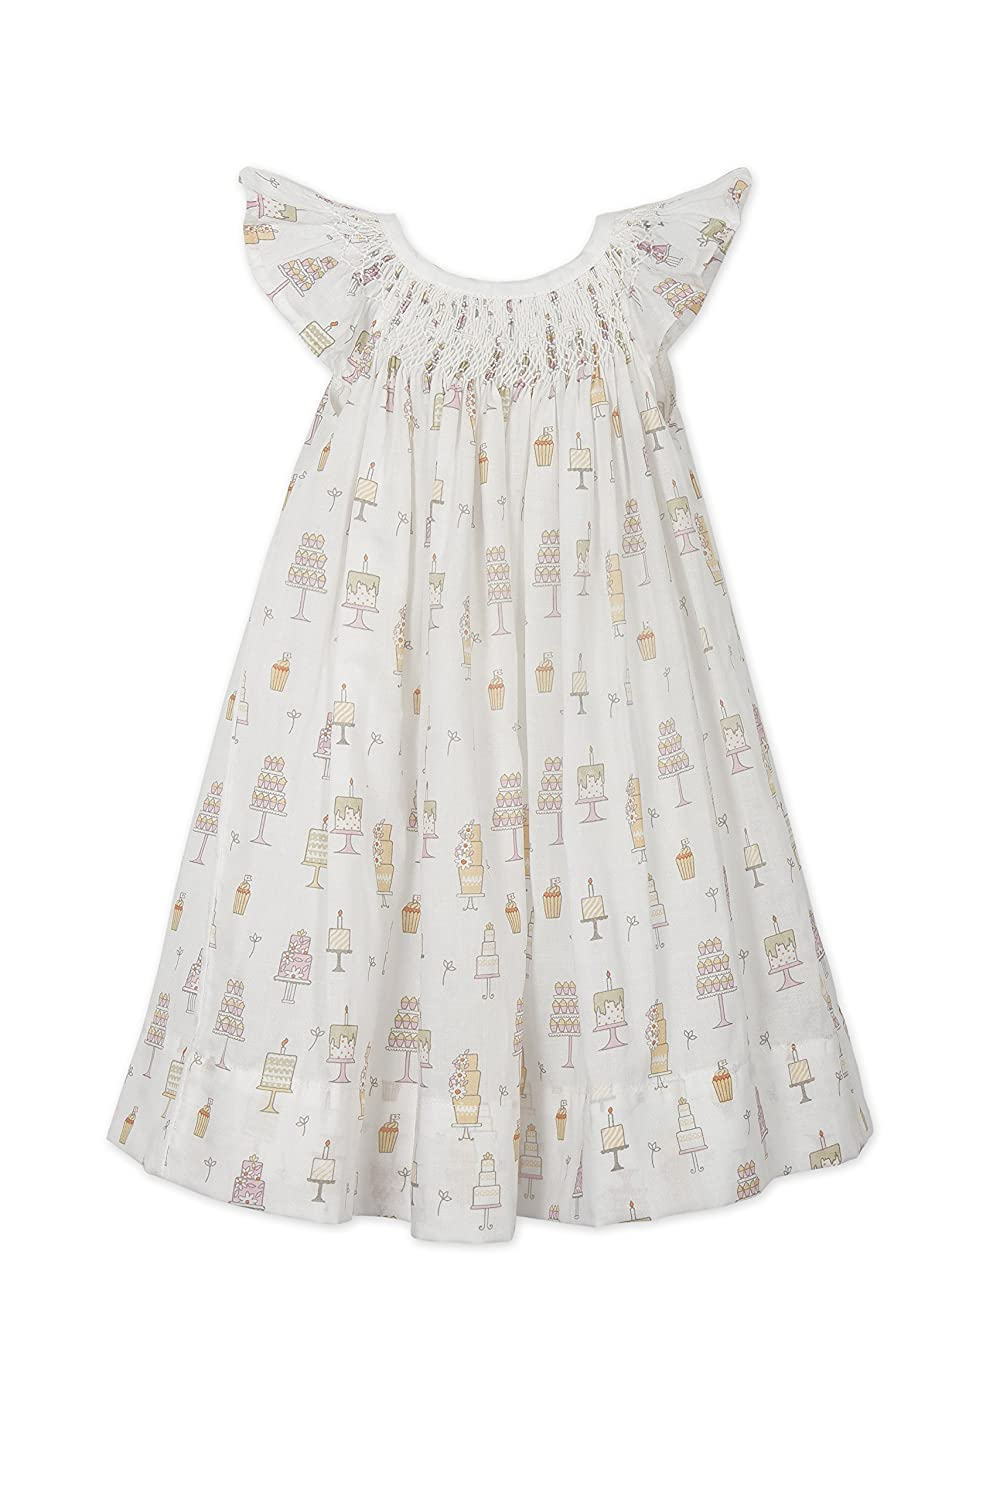 Feather Baby Girls Clothes Pima Cotton Hand-Smocked Angel Sleeve Woven Dress and Bloomer Set